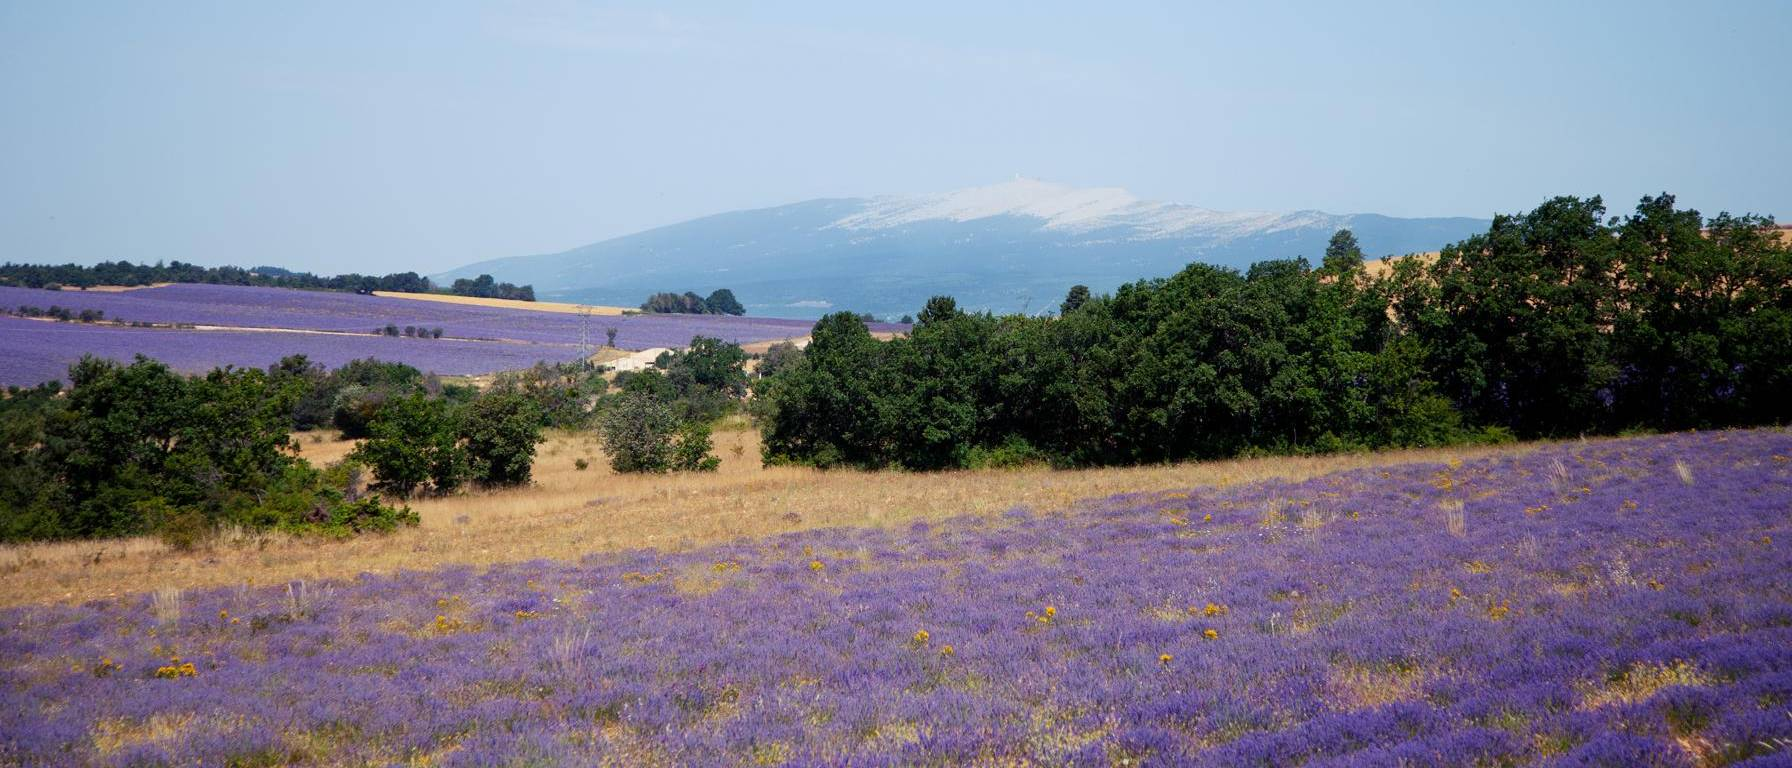 Image of lavender field